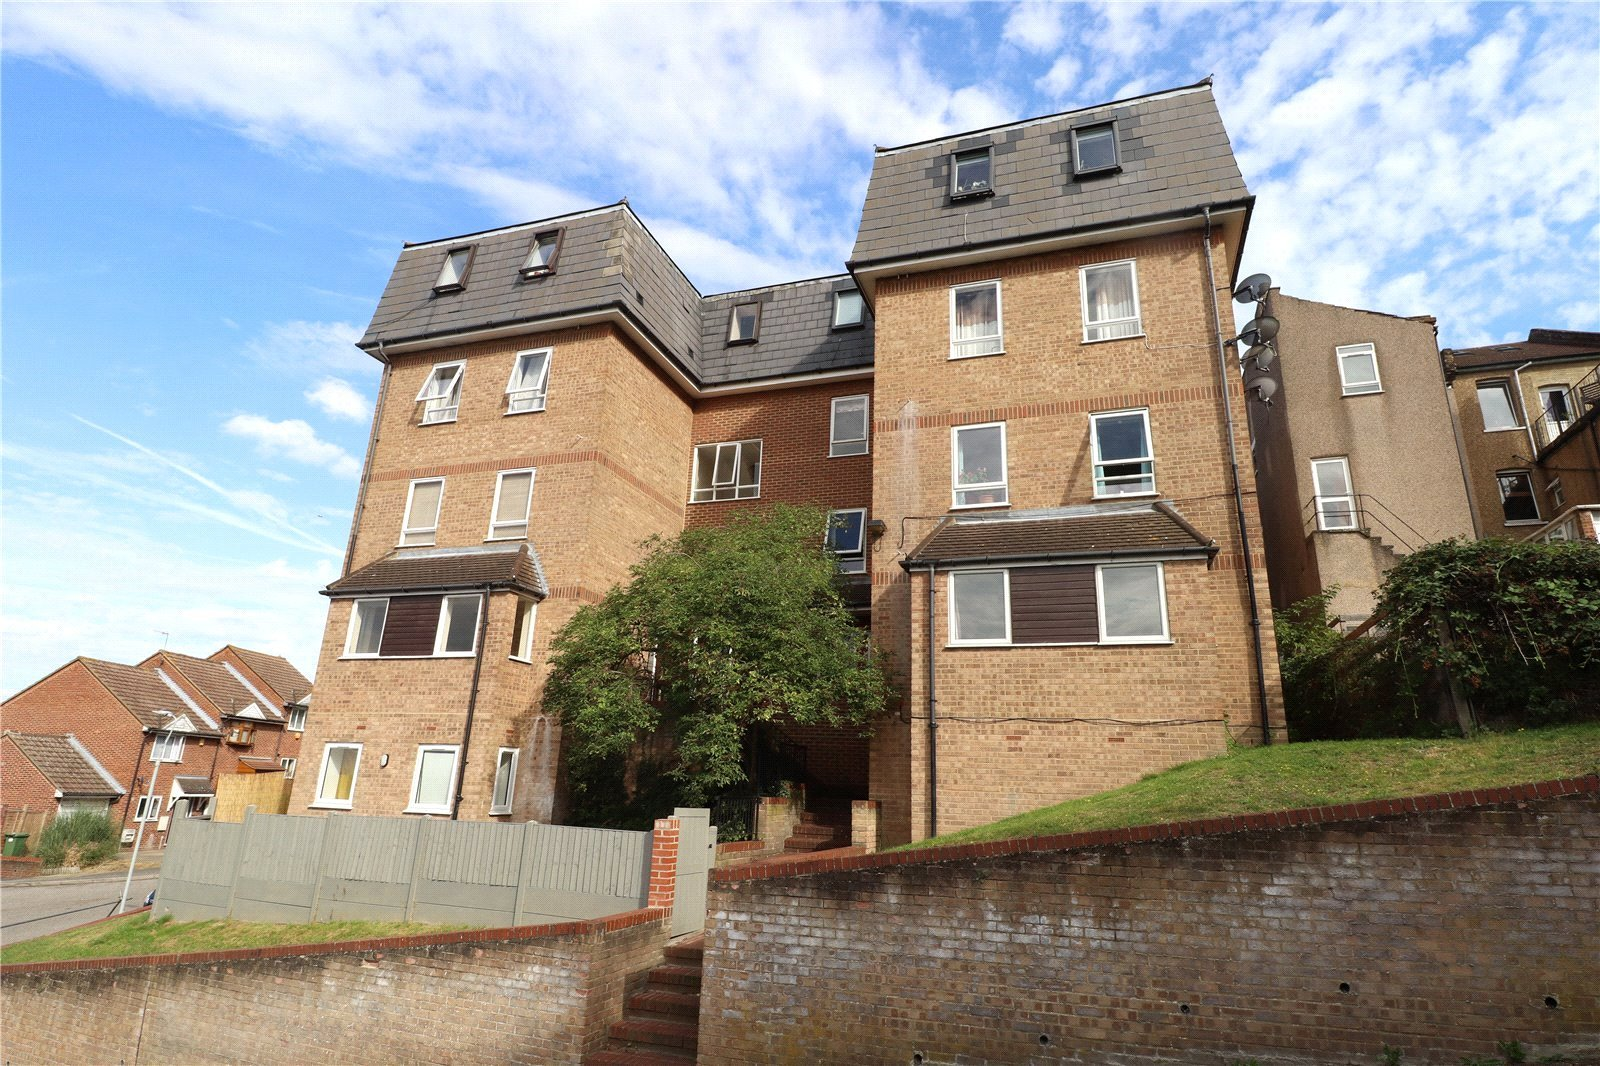 Clive Road, Ground Floor Flat, Belvedere, Kent, DA17